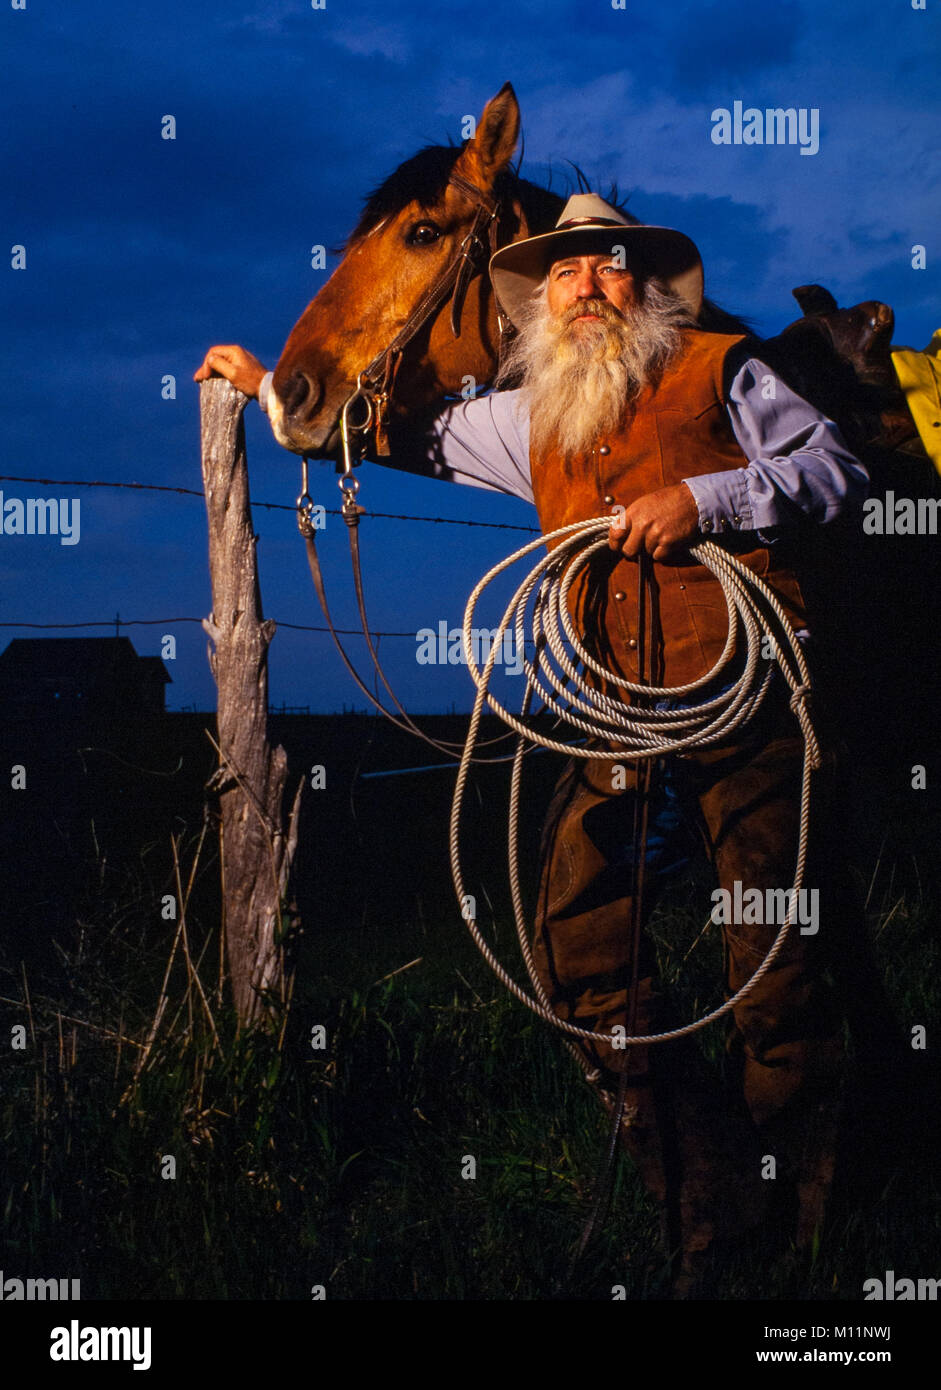 Rancher Dale Buxcel and his horse on the South Dakota range. - Stock Image